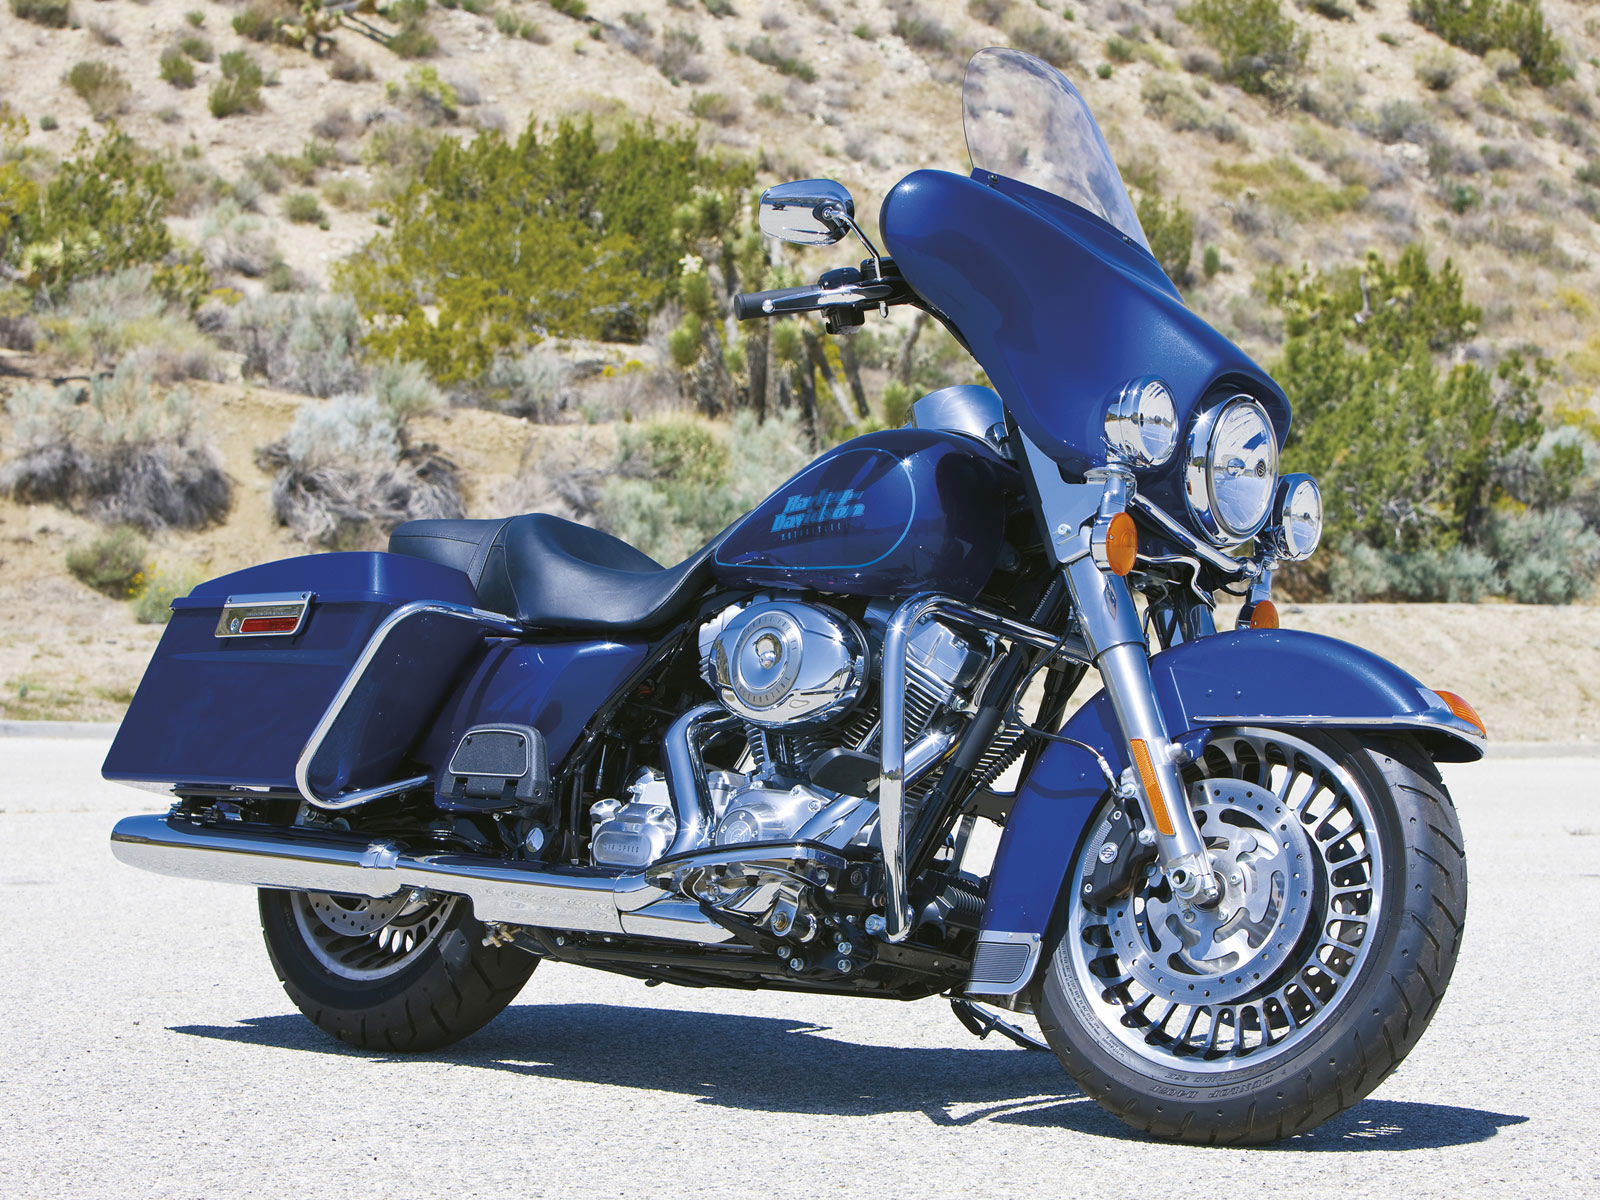 Harley-Davidson FLHTC Electra Glide Classic 2004 pics #18129